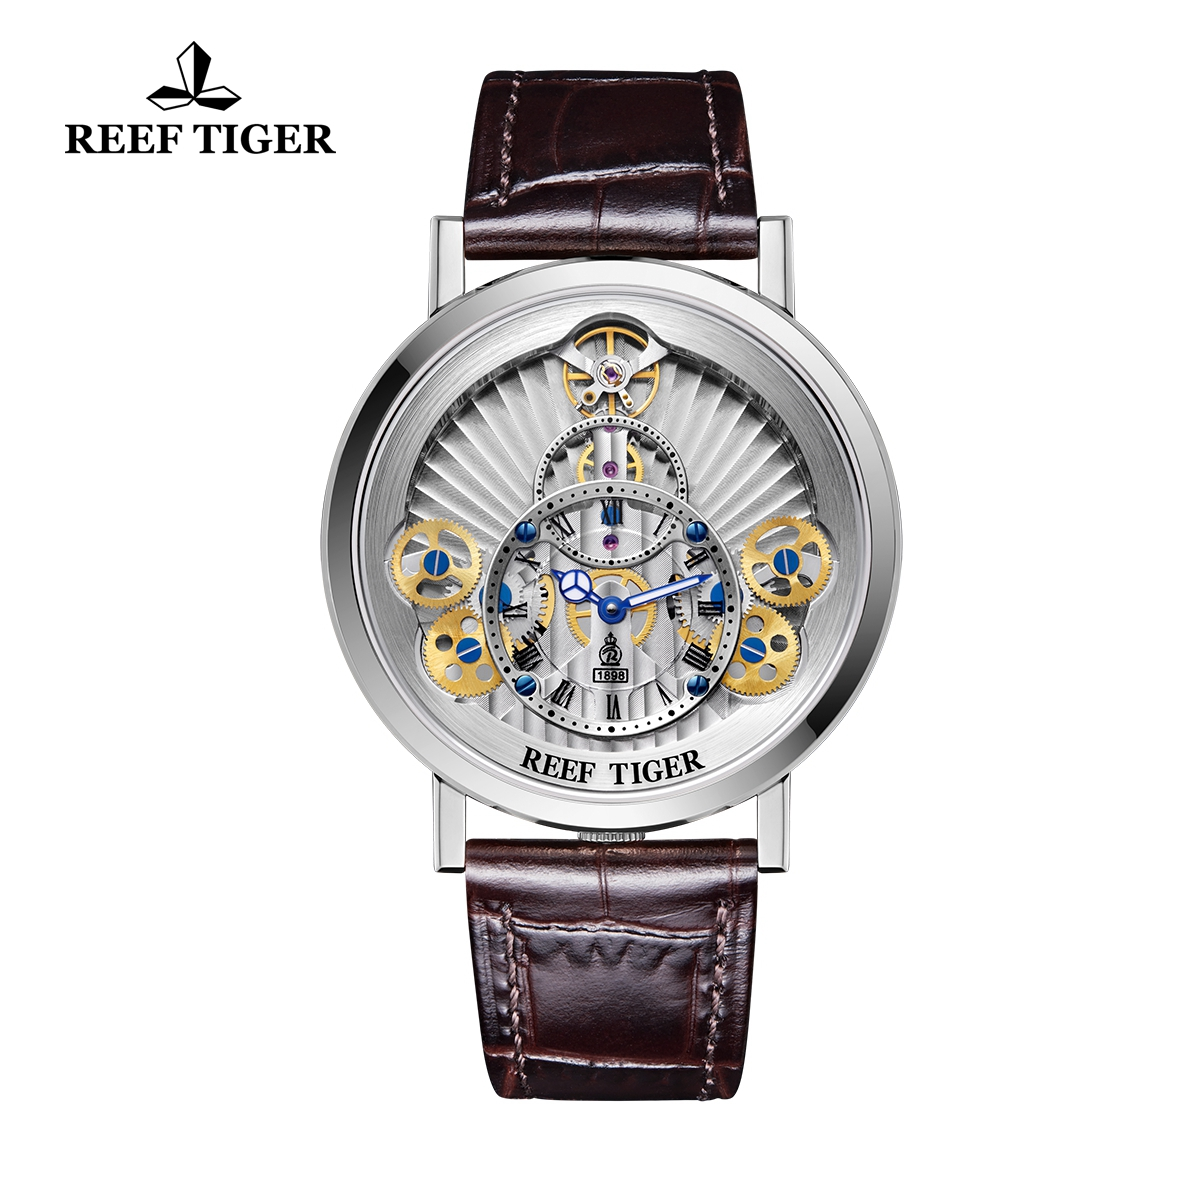 Reef Tiger Artist Rotation Men's Casual Watches Fashion Steel Leather Strap Quartz Watch RGA1958-YSS